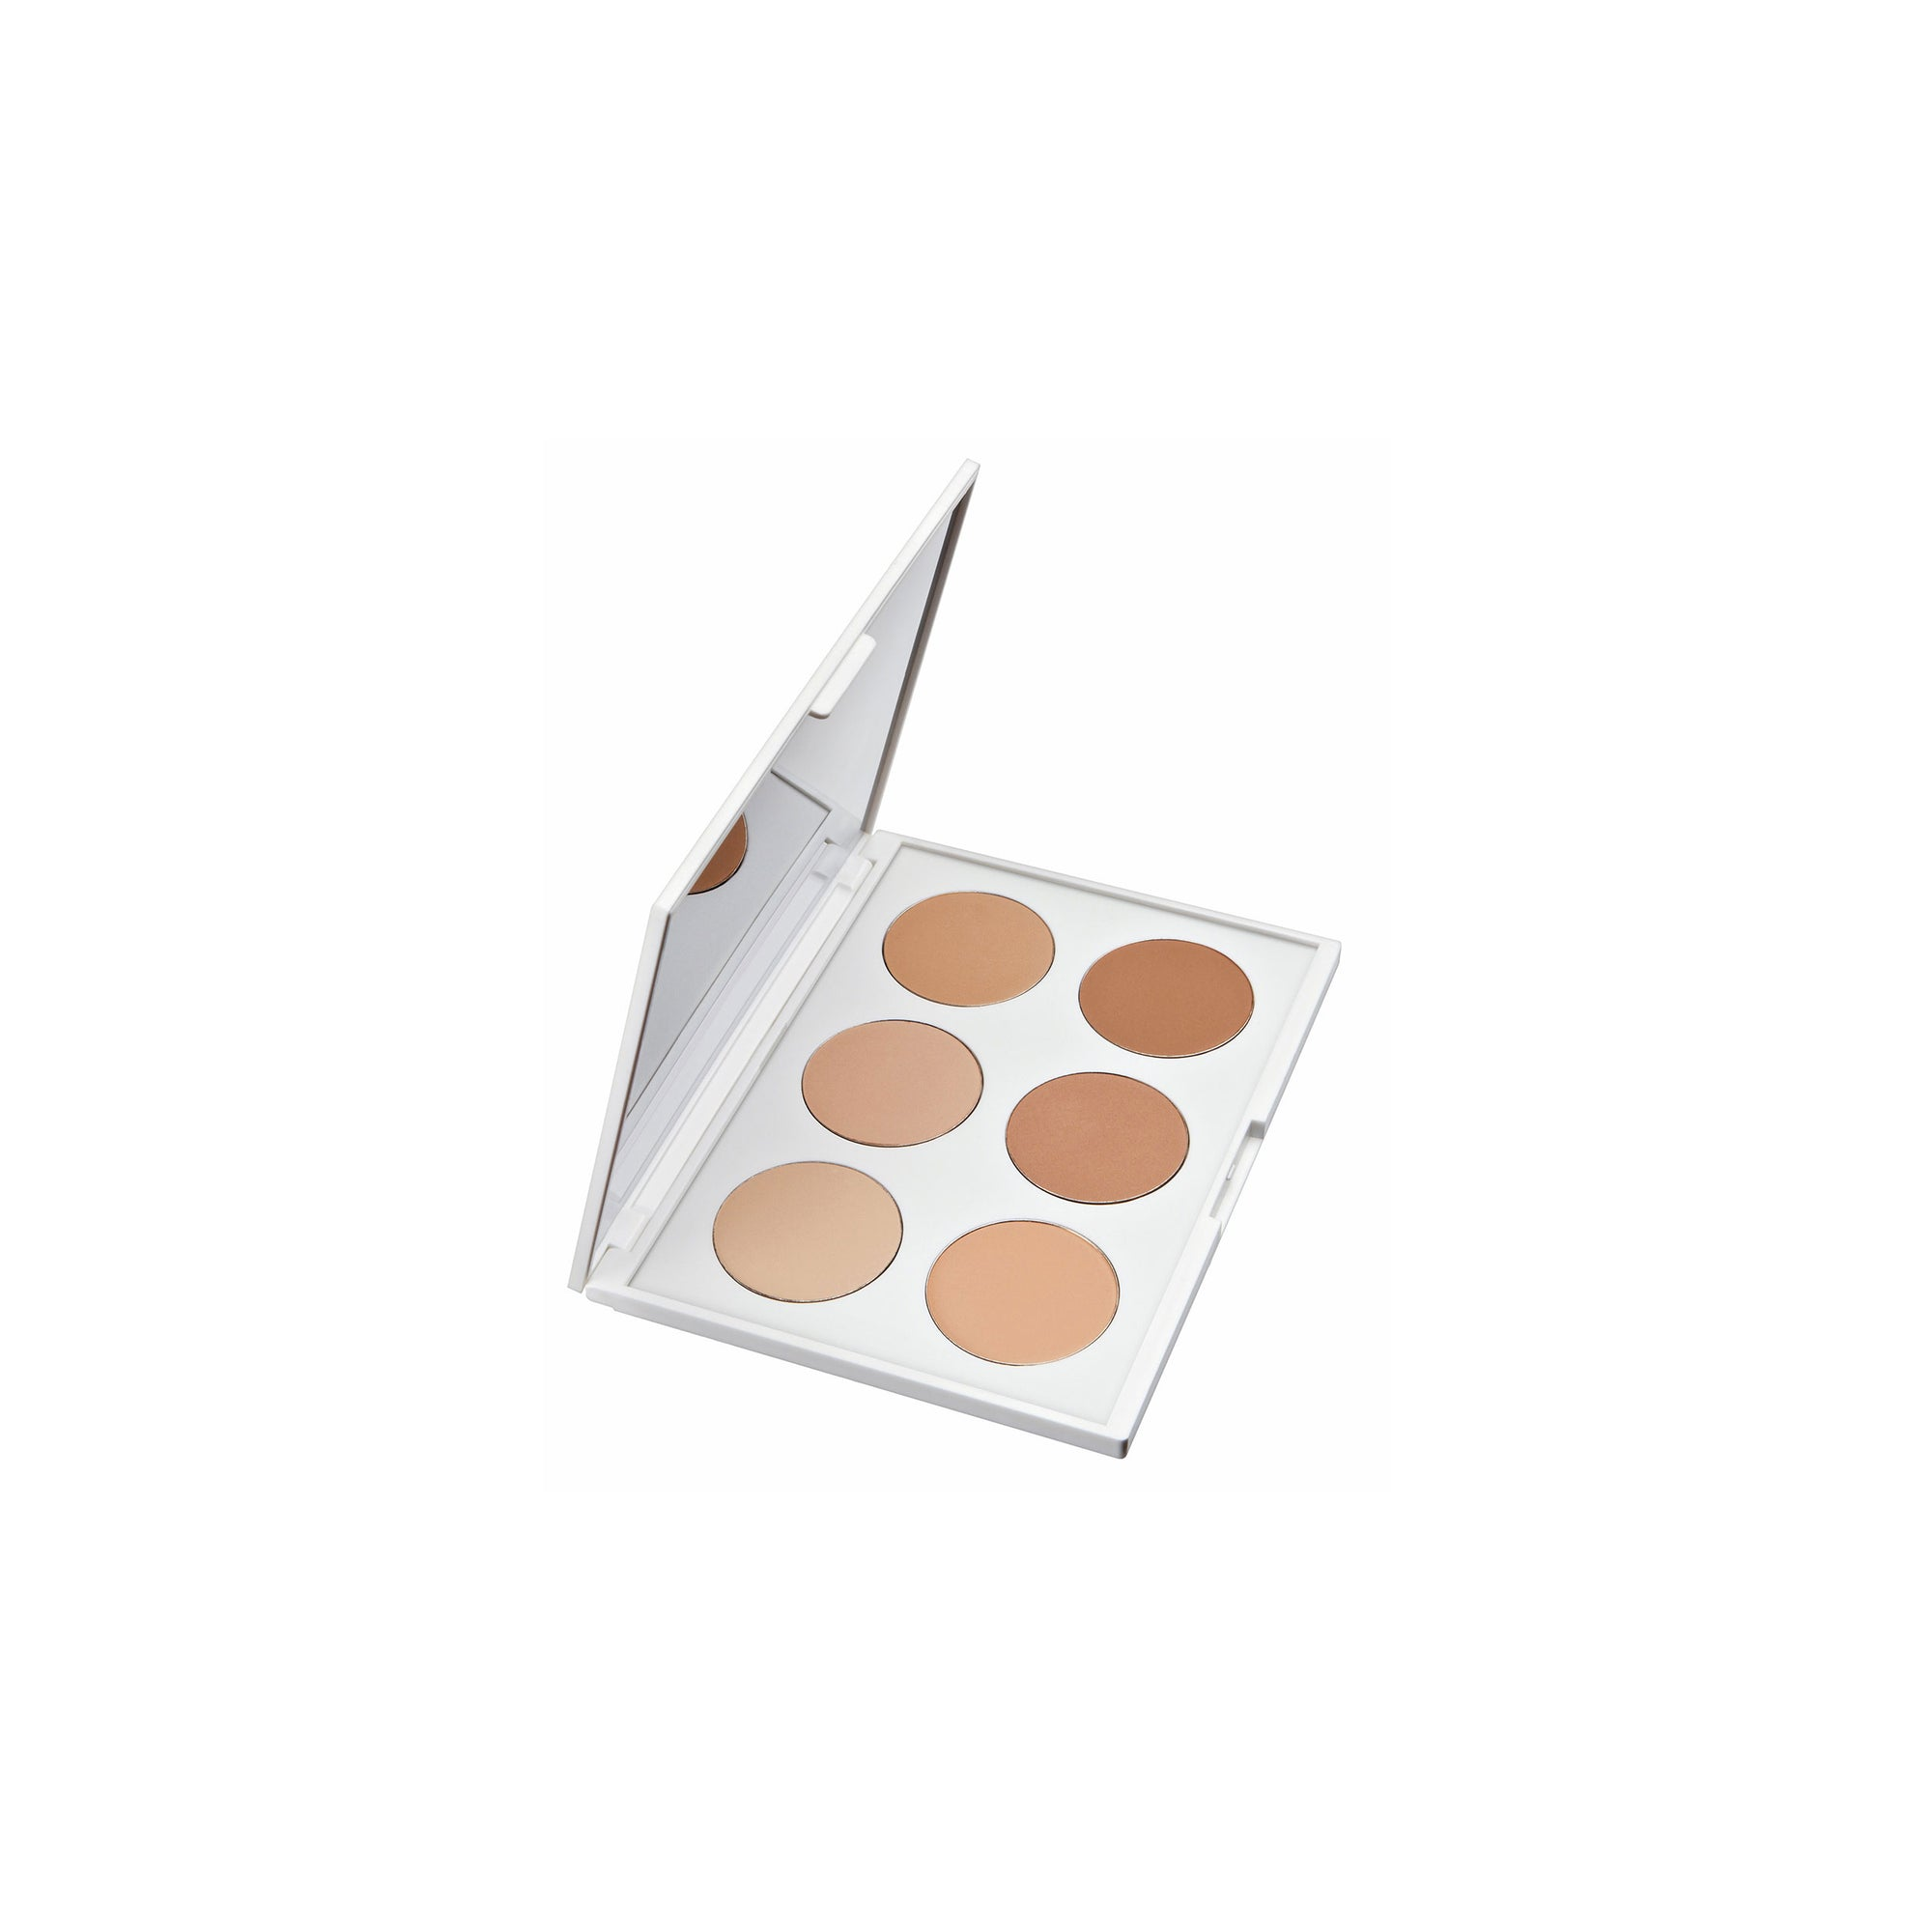 powder foundation pre-set palette